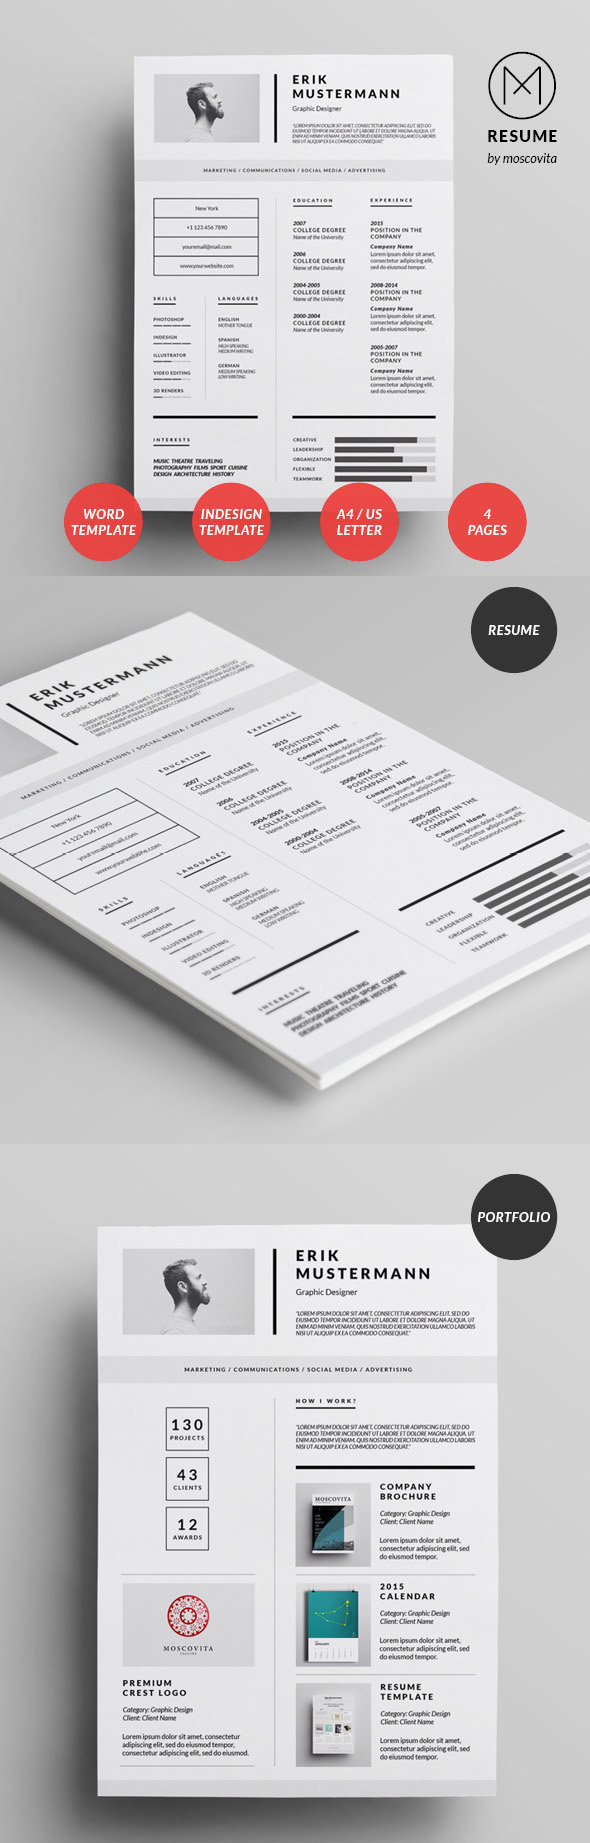 indesign resume template - Roho.4senses.co